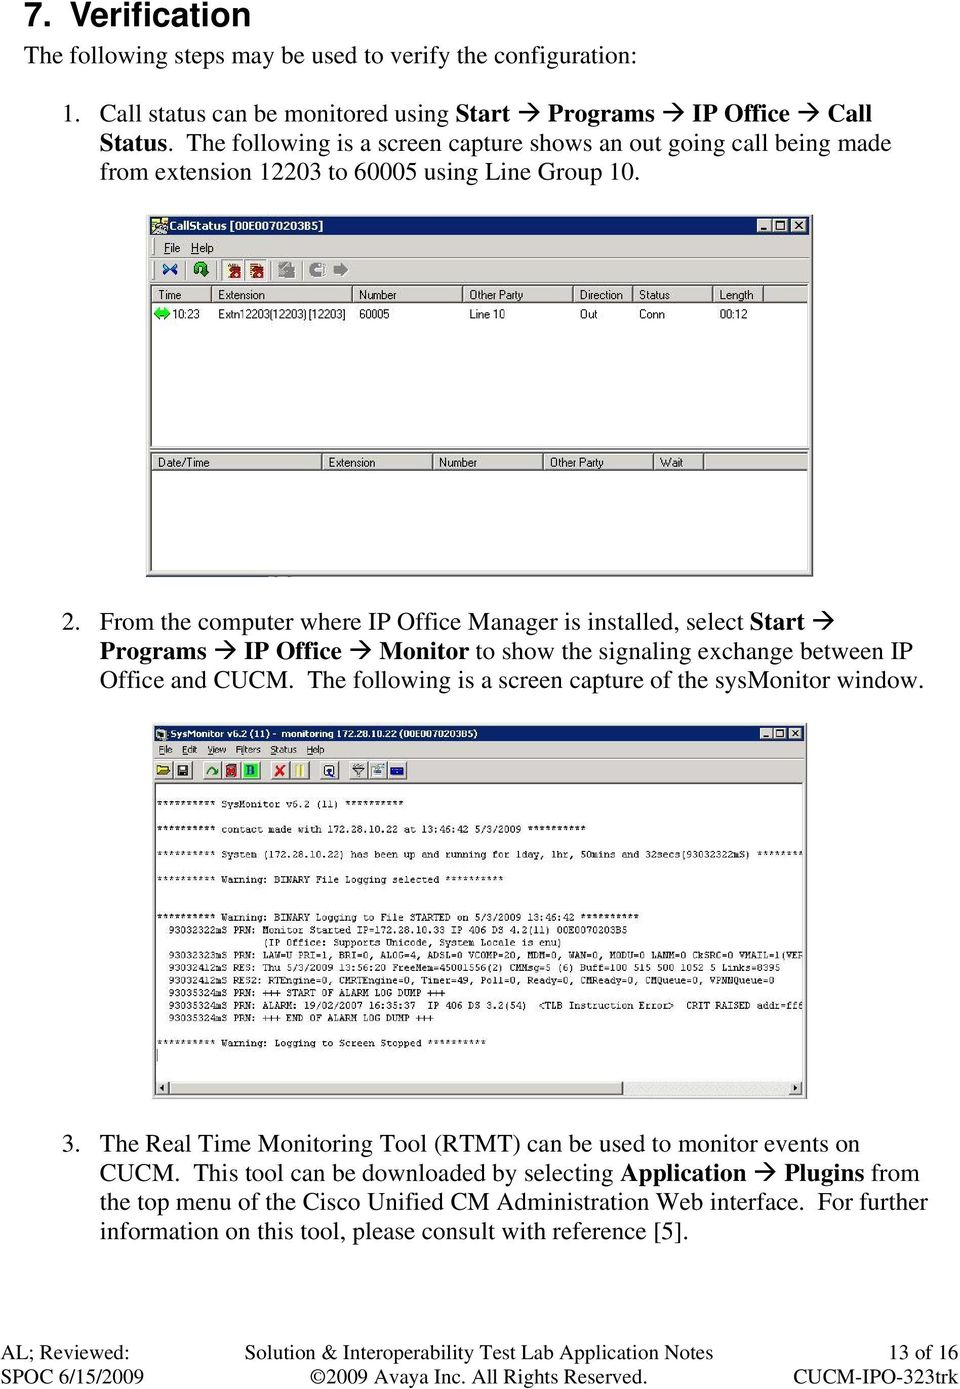 From the computer where IP Office Manager is installed, select Start Programs IP Office Monitor to show the signaling exchange between IP Office and CUCM.